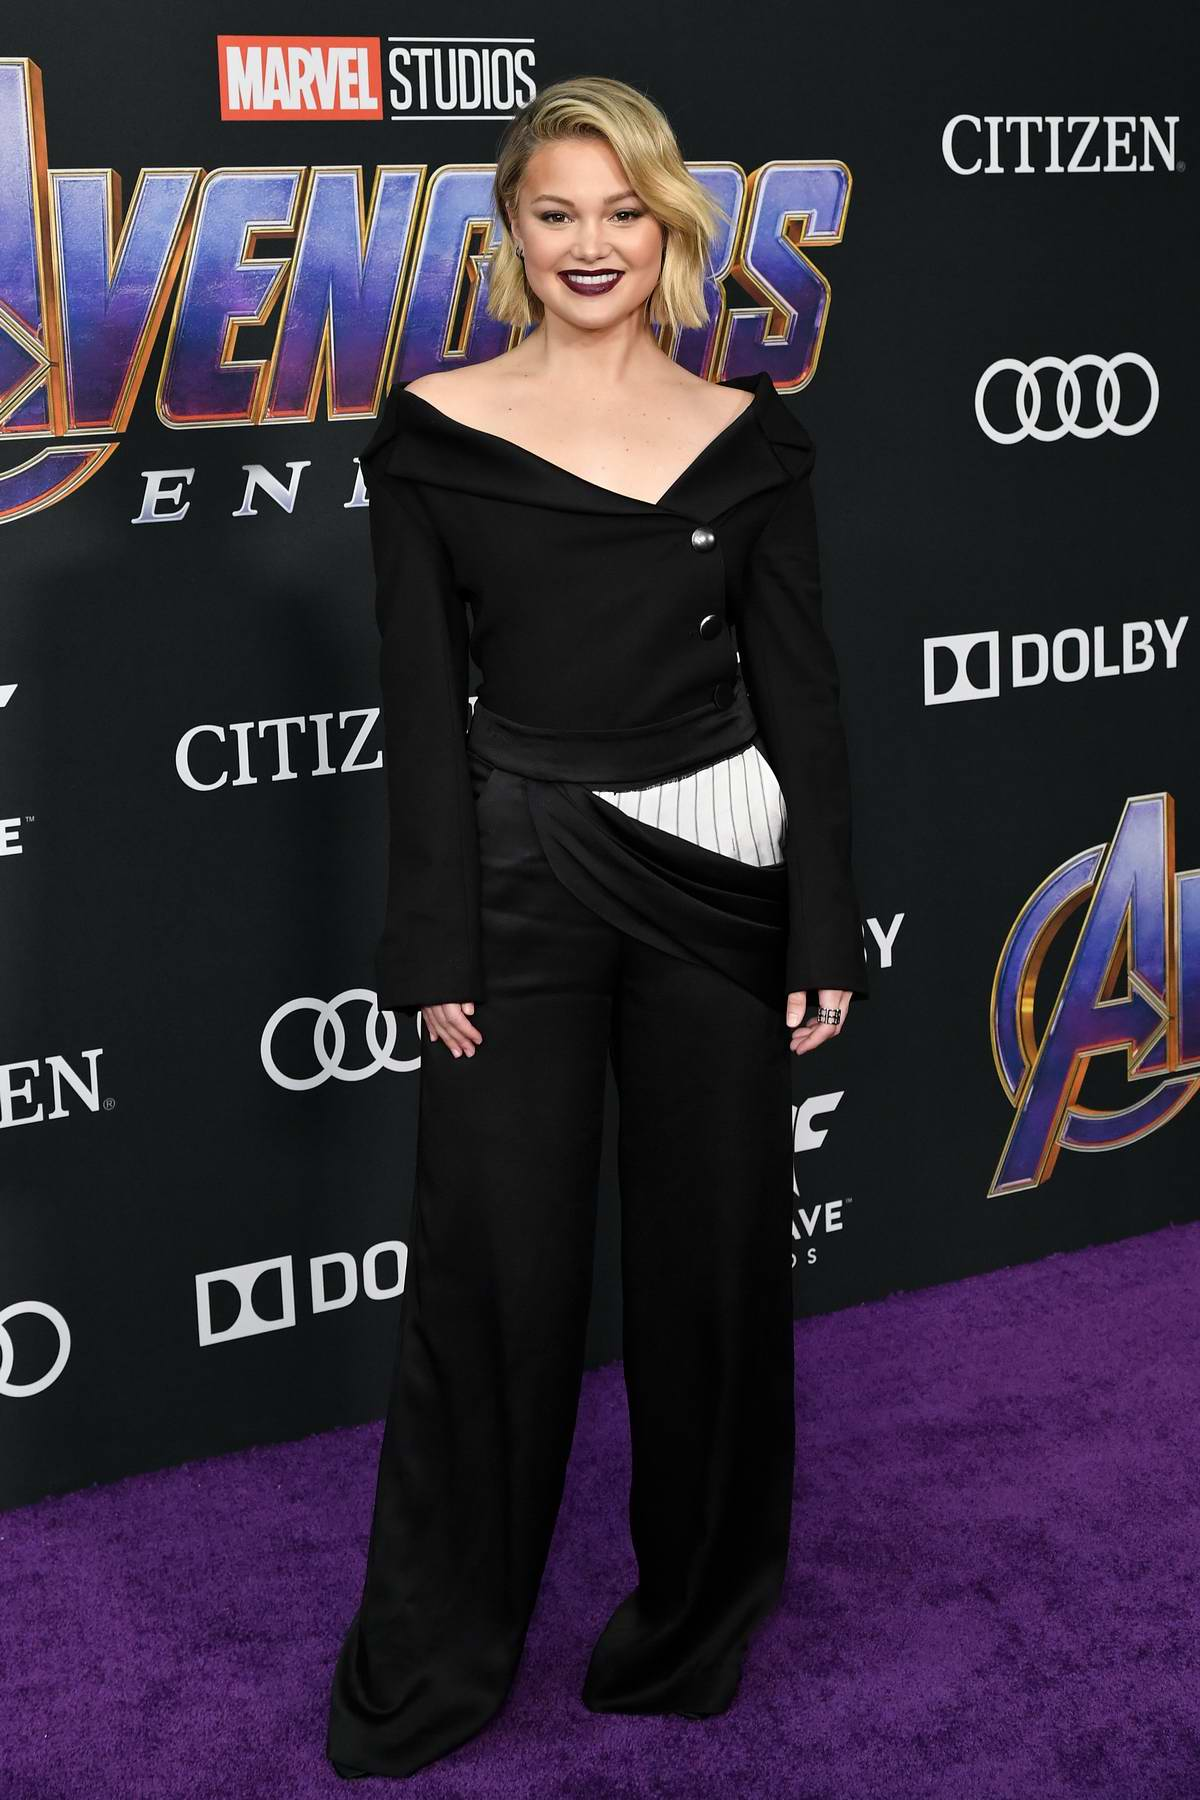 Olivia Holt attends the World Premiere of 'Avengers: Endgame' at the LA Convention Center in Los Angeles